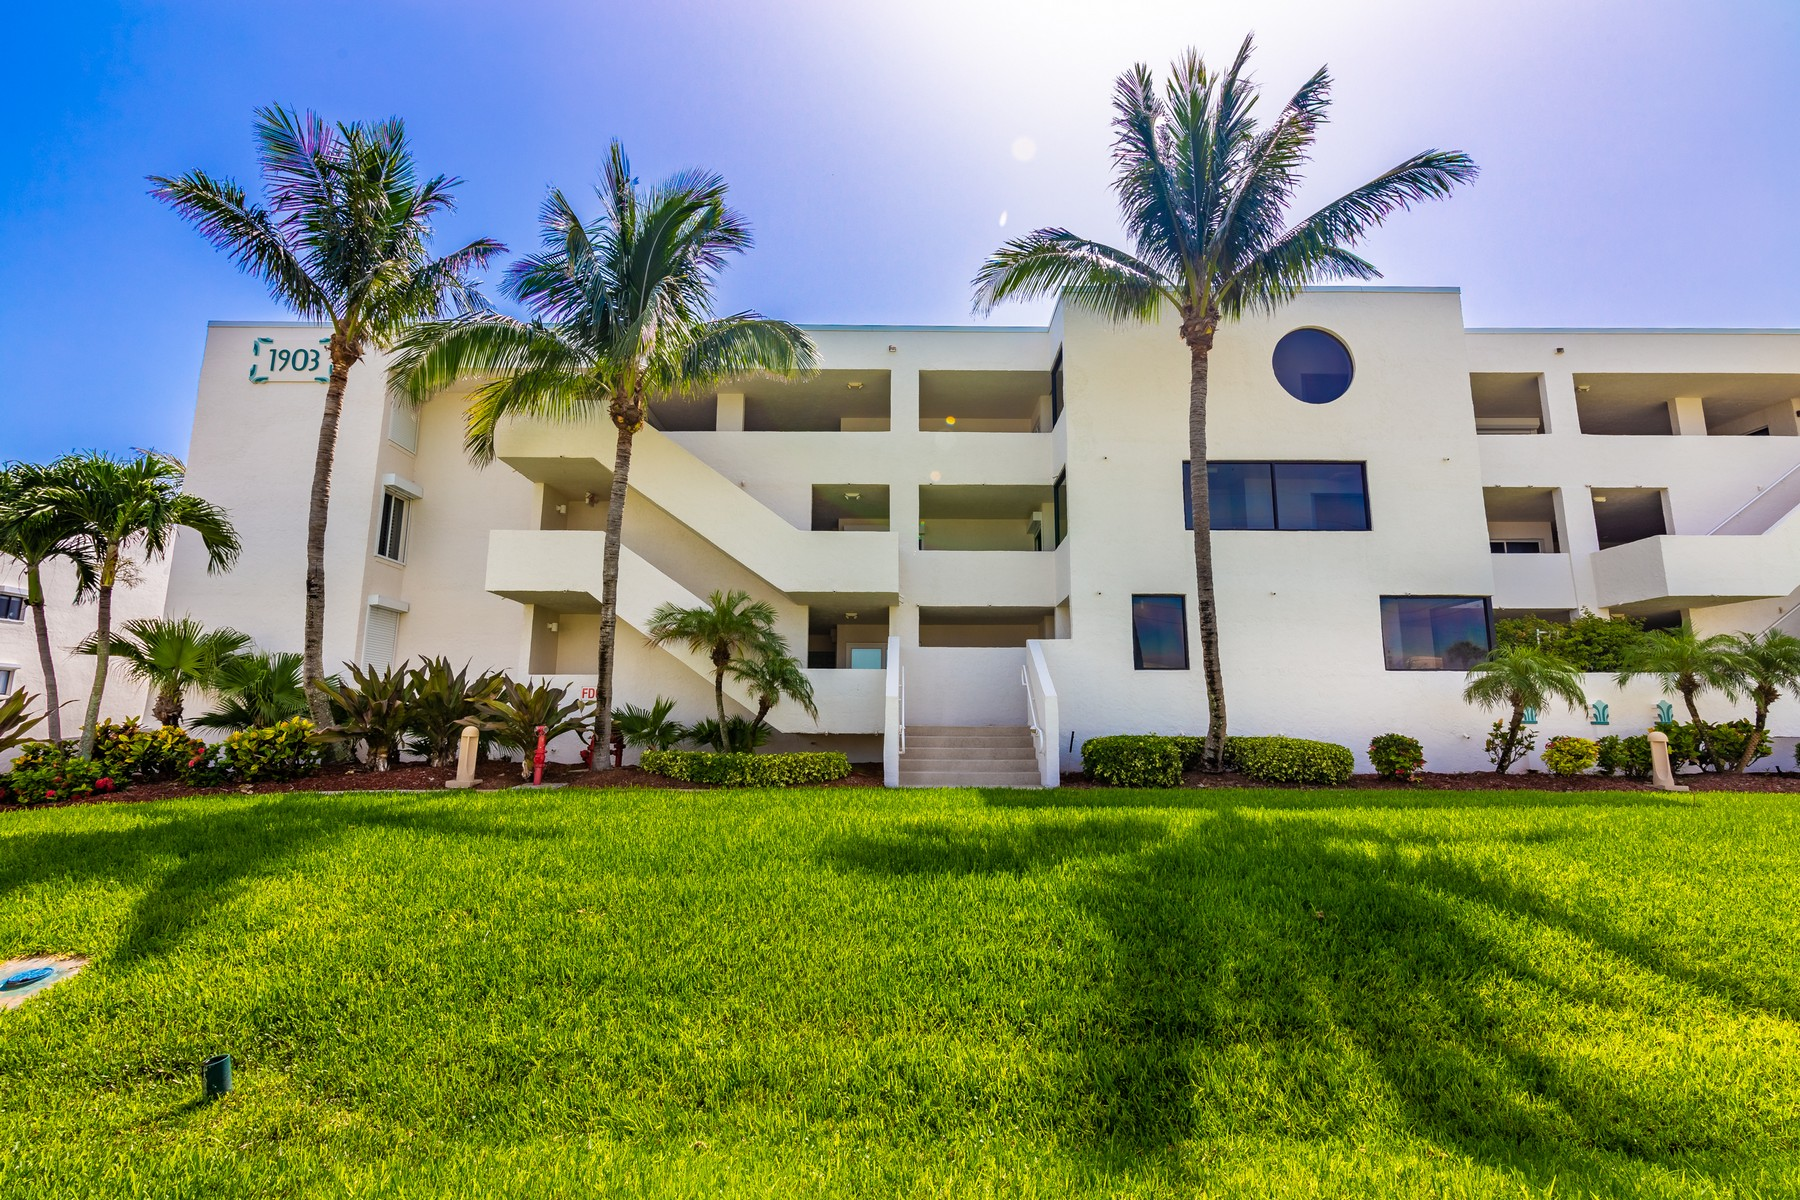 Additional photo for property listing at Gorgeous Oceanfront Condo with Panoramic Views of the Crystal Blue Atlantic 1903 Atlantic Street Unit 222 Melbourne Beach, Florida 32951 United States